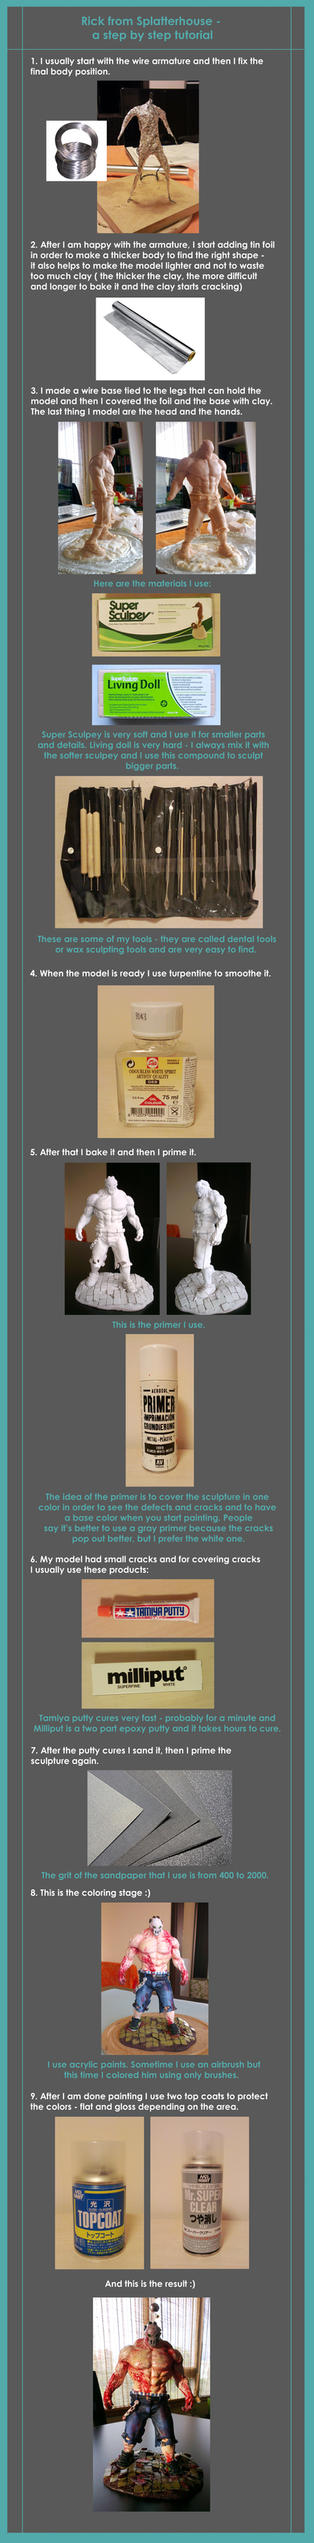 RICK - sculpting TUTORIAL by didoneto